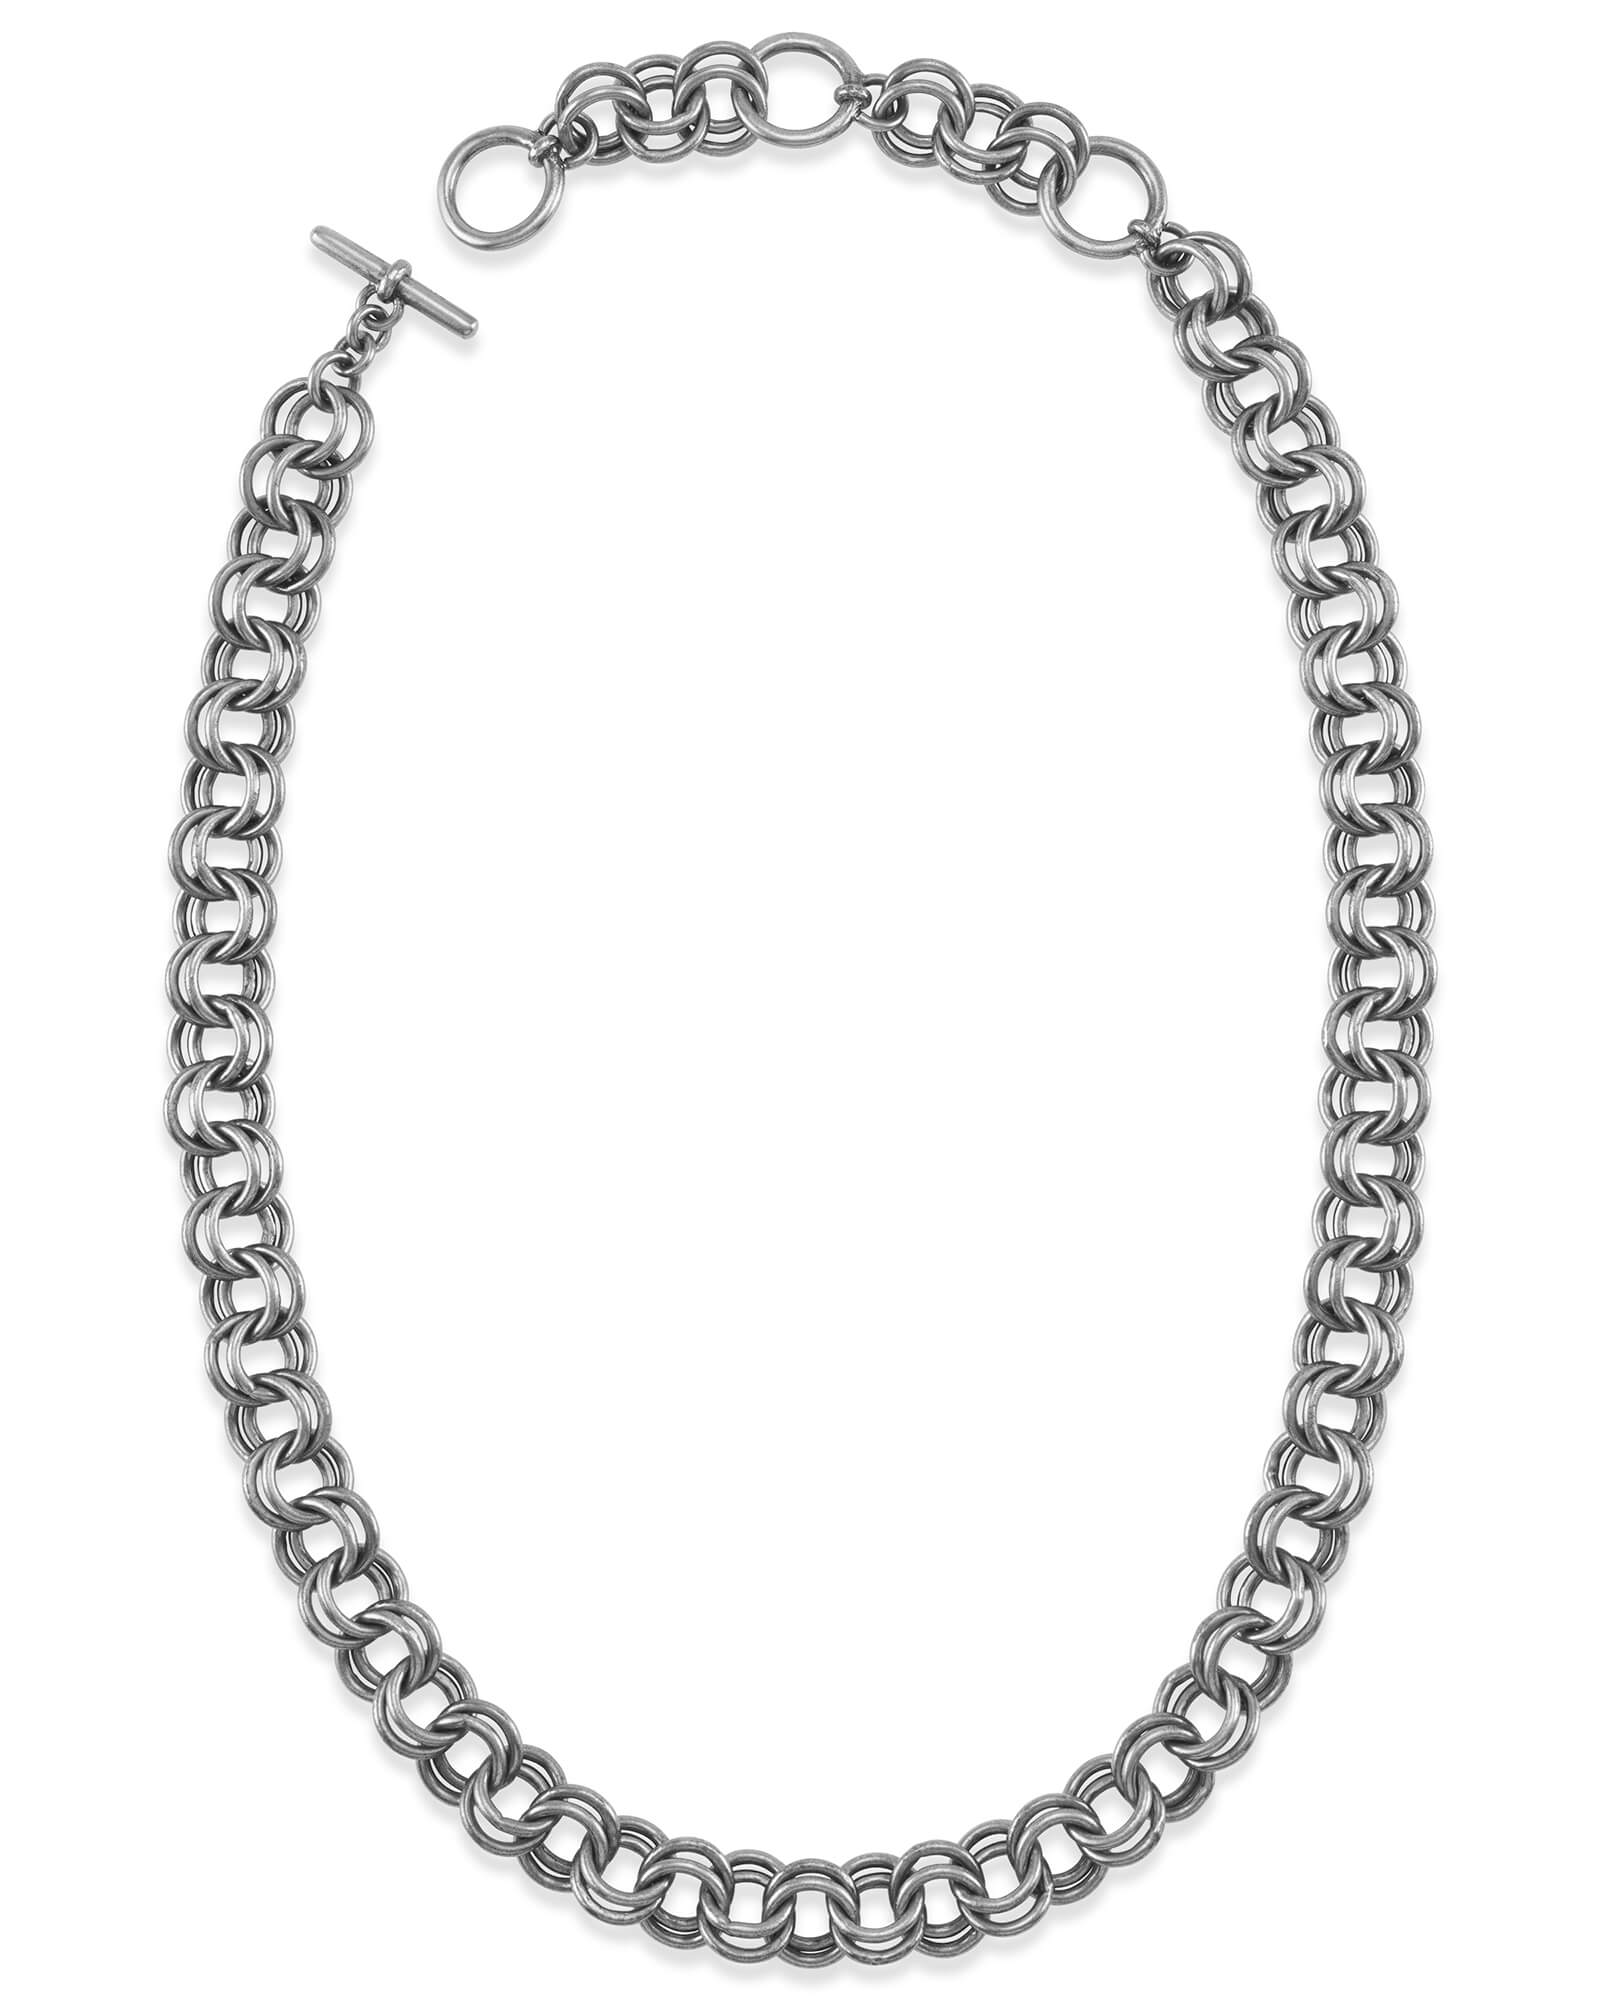 18 Inch Double Chain Link Necklace in Vintage Silver